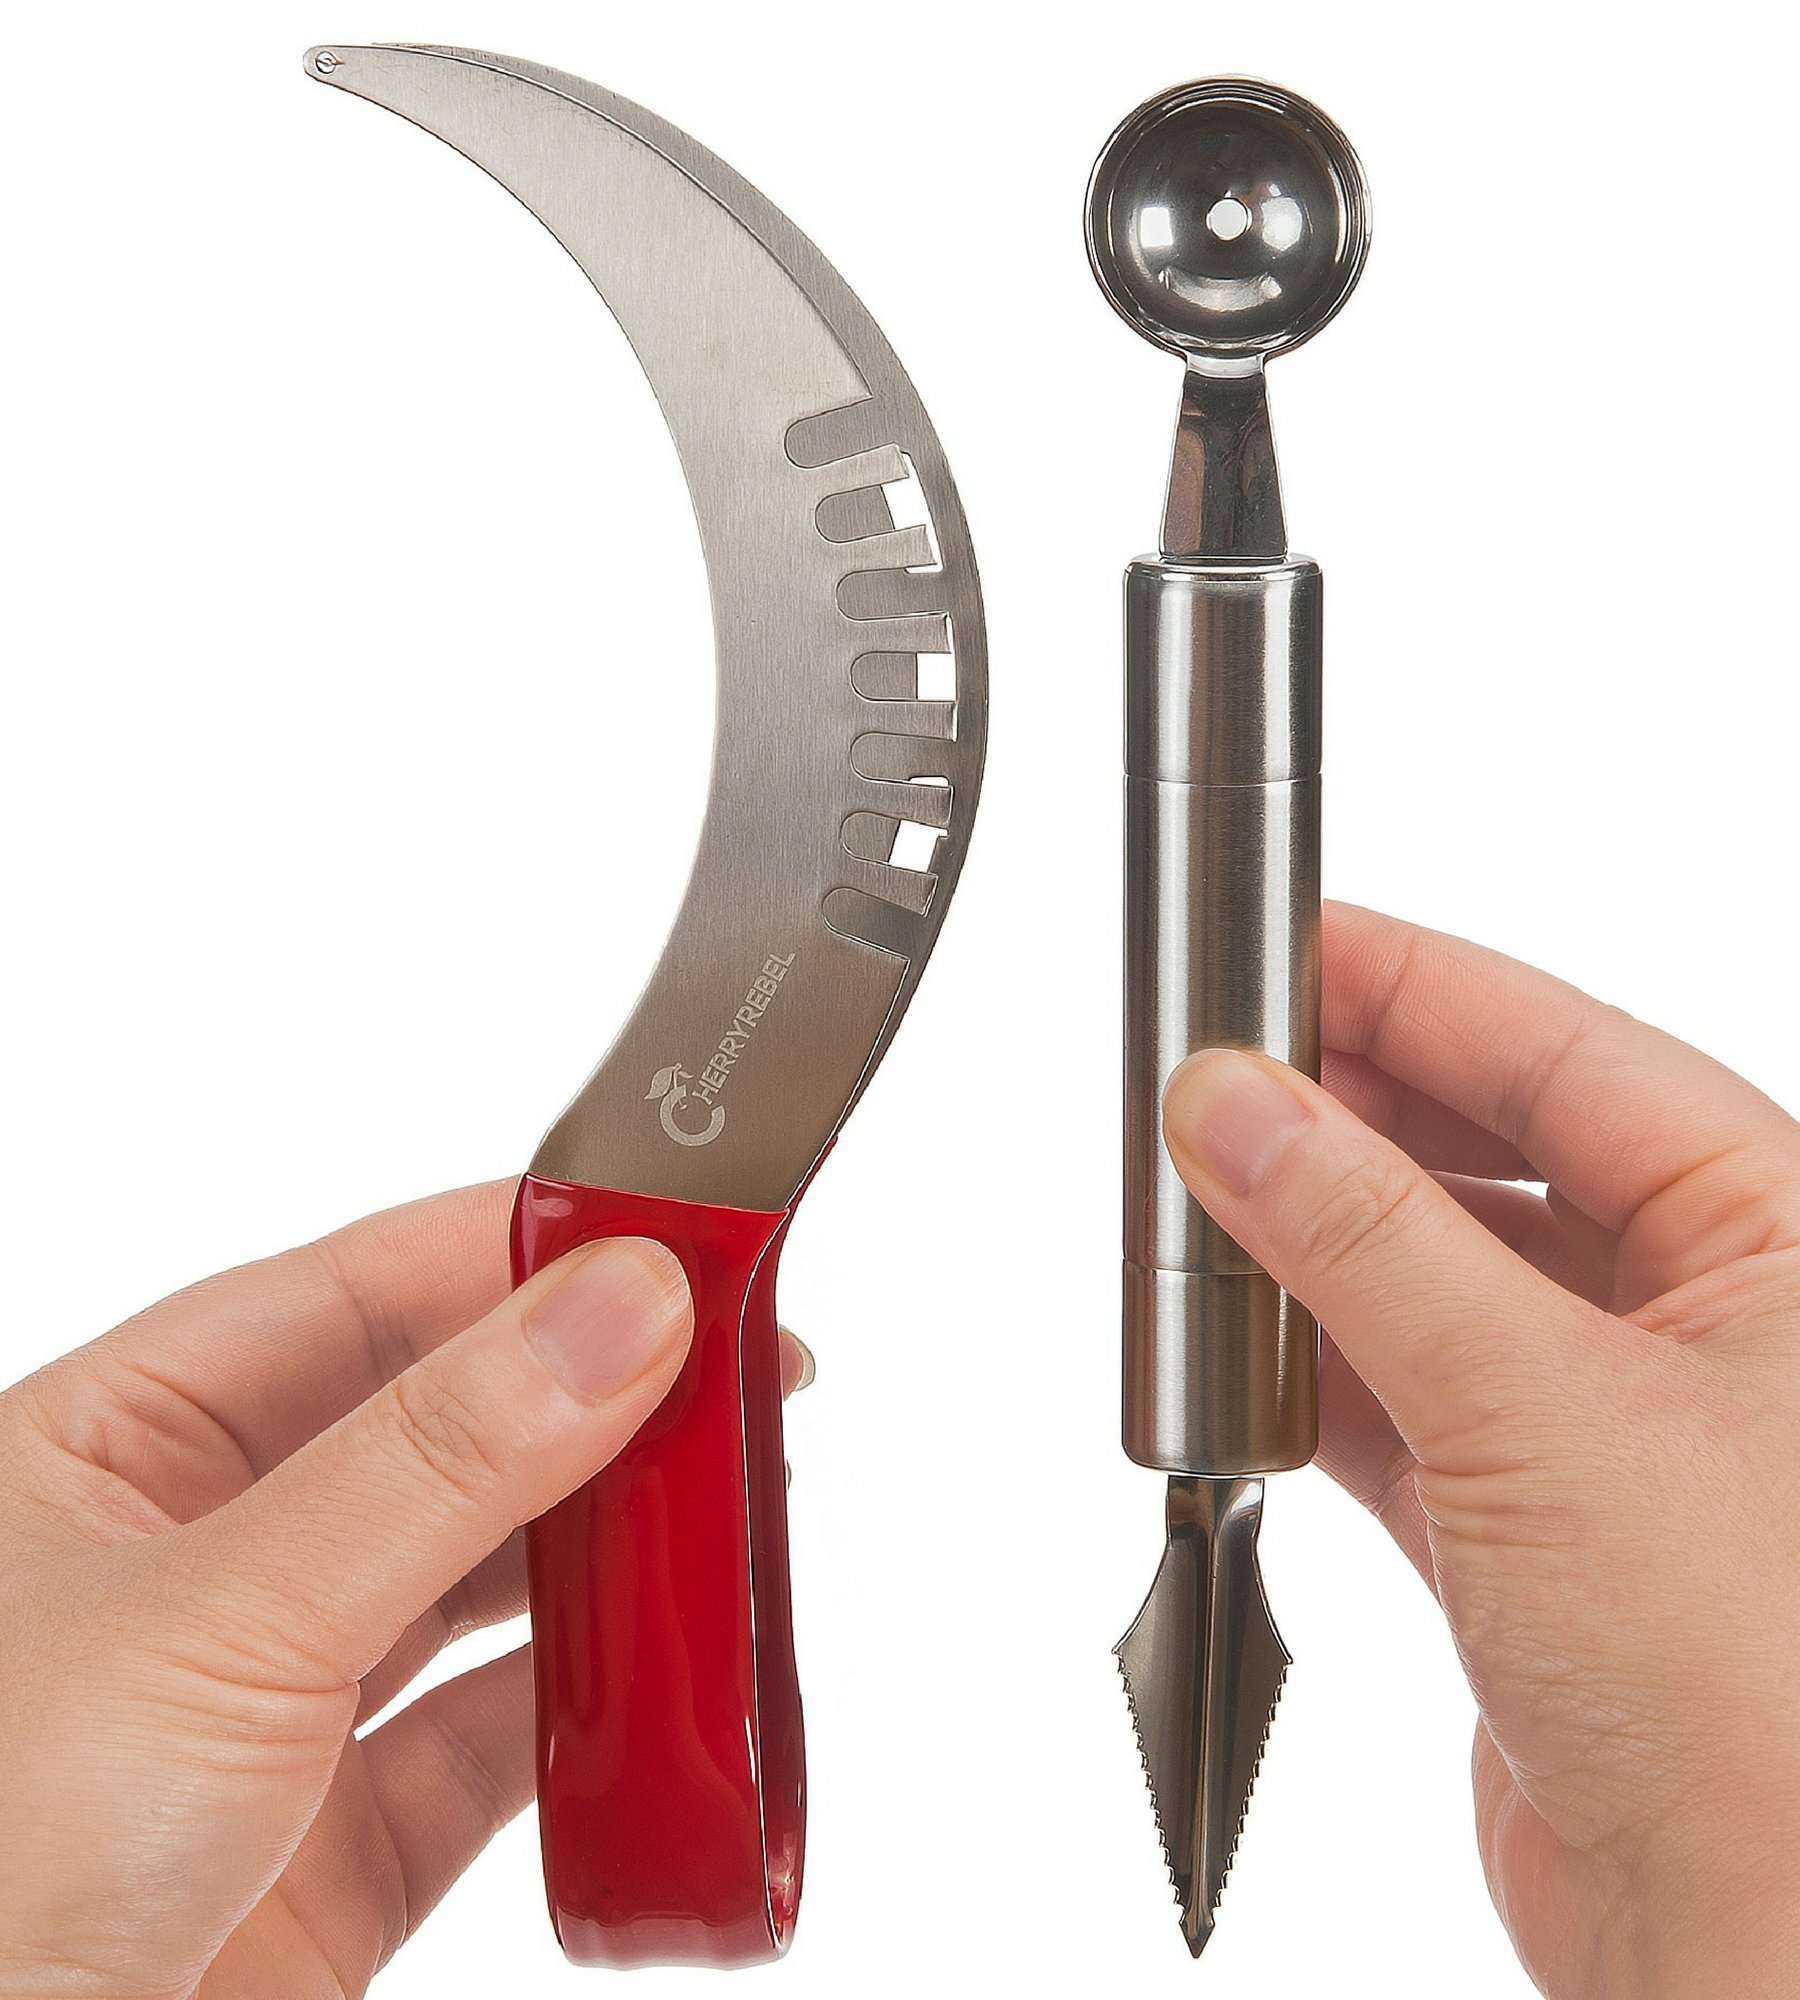 CHERRY REBEL Watermelon Slicer and Server. The Best Melon Cutter Corer Knife & Tongs in 1 Utensil + Melon Baller Scoop and Carver. Non-Slip Handle. 304 Stainless Steel. Lifetime Replacement Warranty.